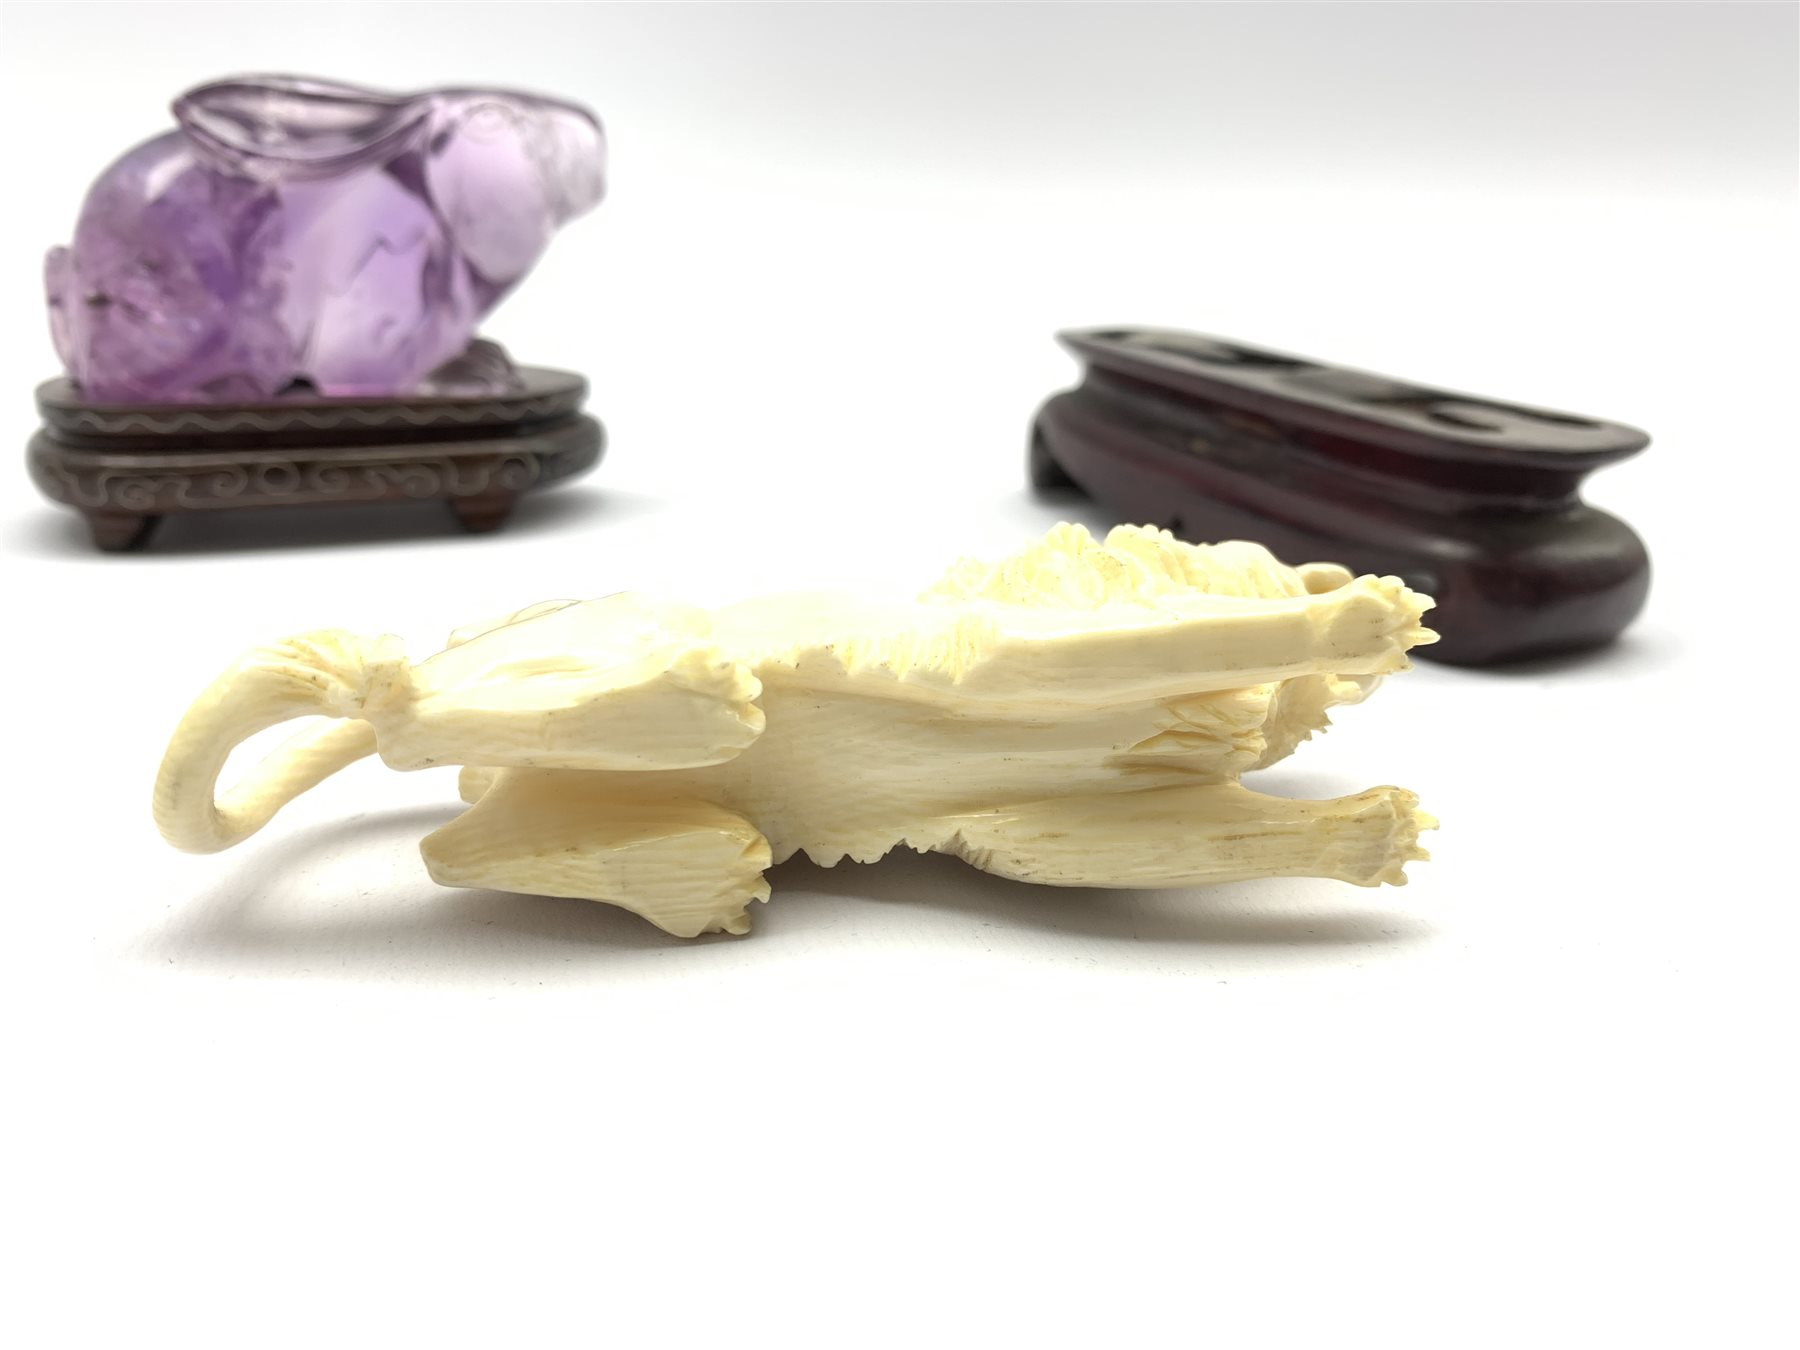 Oriental amethyst glass rabbit on a wooden stand W9cm and an early 20th century carved ivory figure - Image 5 of 11